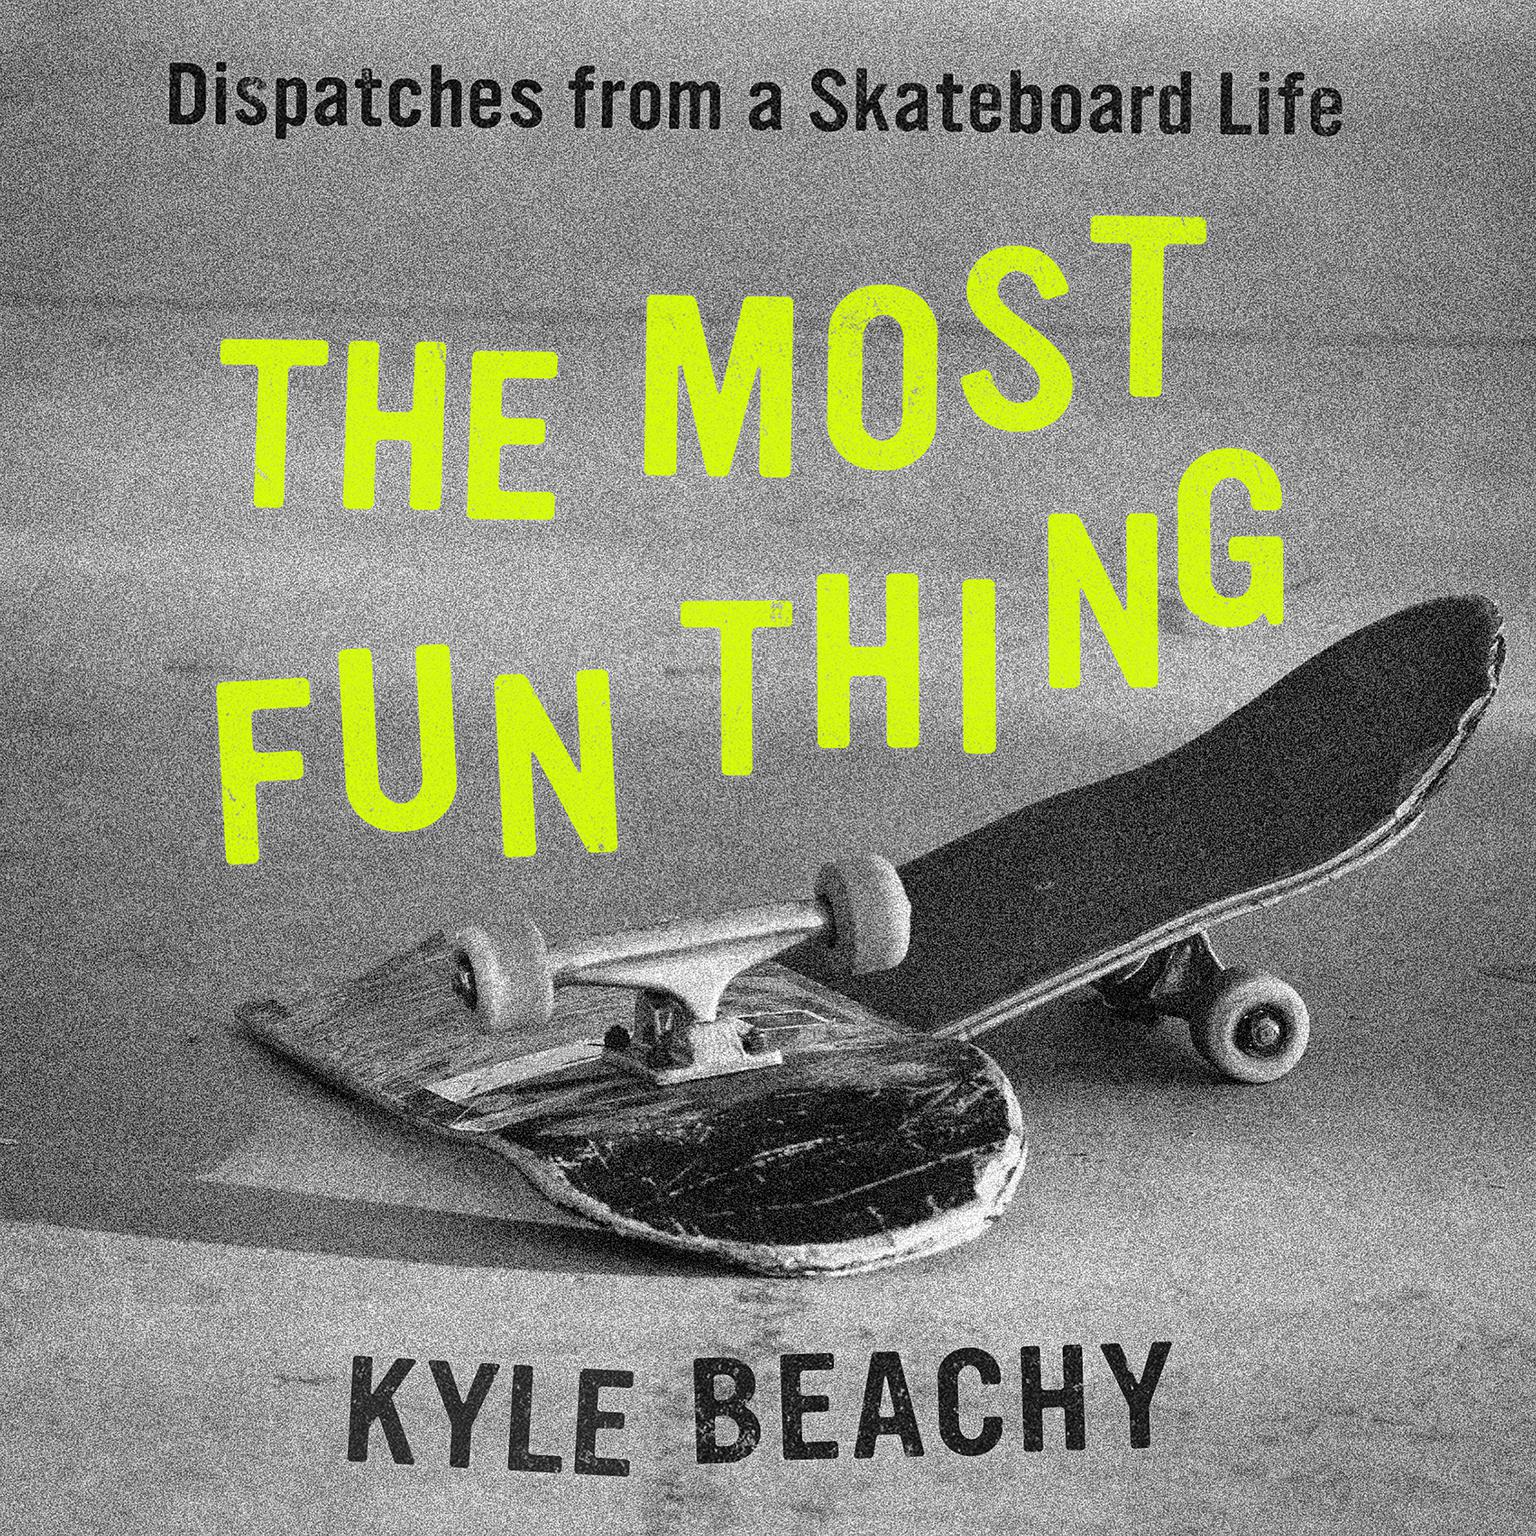 The Most Fun Thing: Dispatches from a Skateboard Life Audiobook, by Kyle Beachy